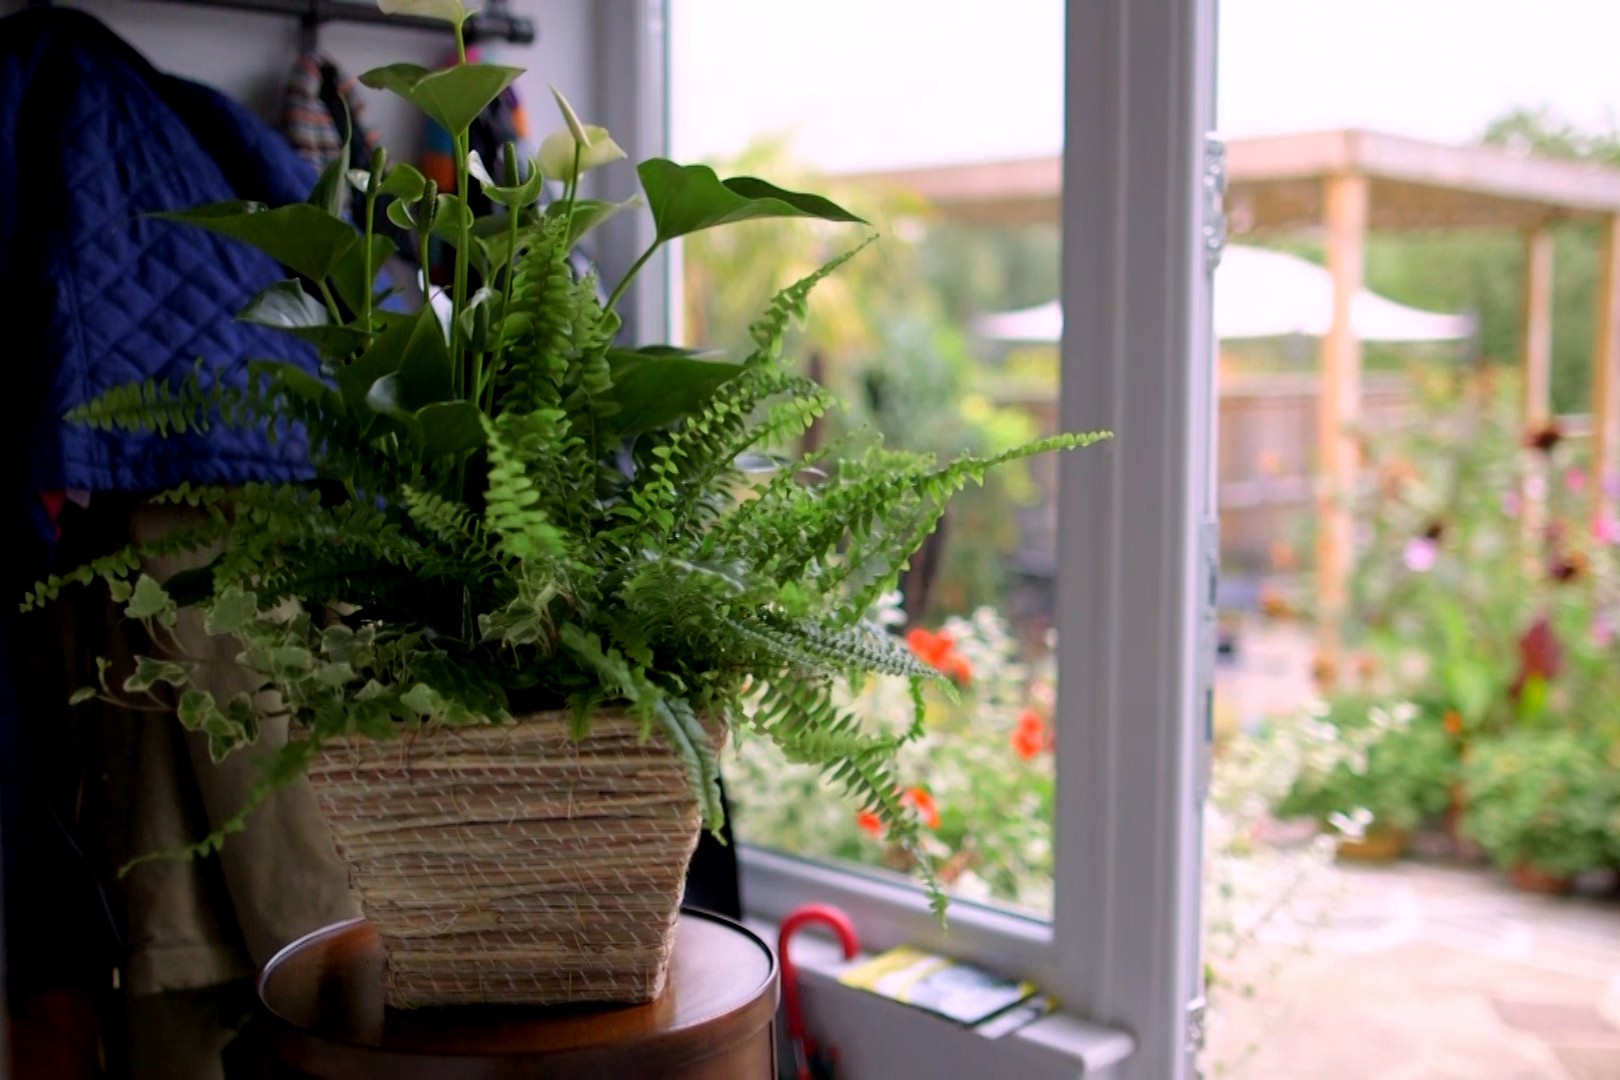 Fern and peace lily in indoor pot display